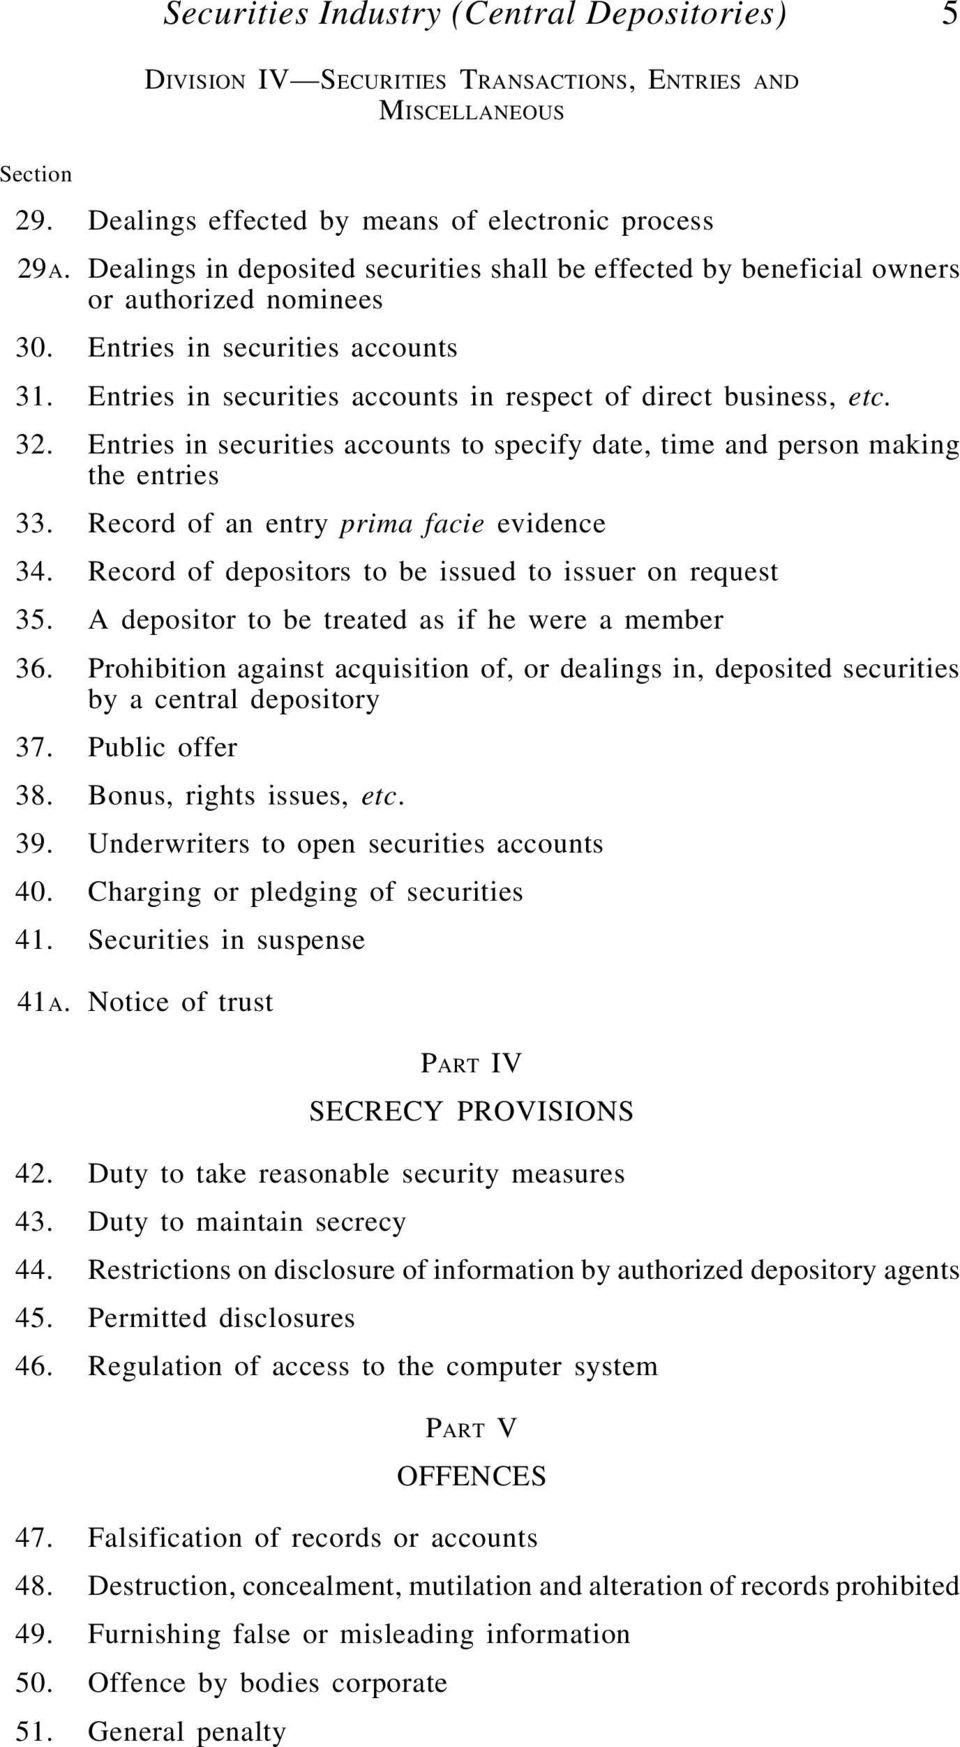 32. Entries in securities accounts to specify date, time and person making the entries 33. Record of an entry prima facie evidence 34. Record of depositors to be issued to issuer on request 35.